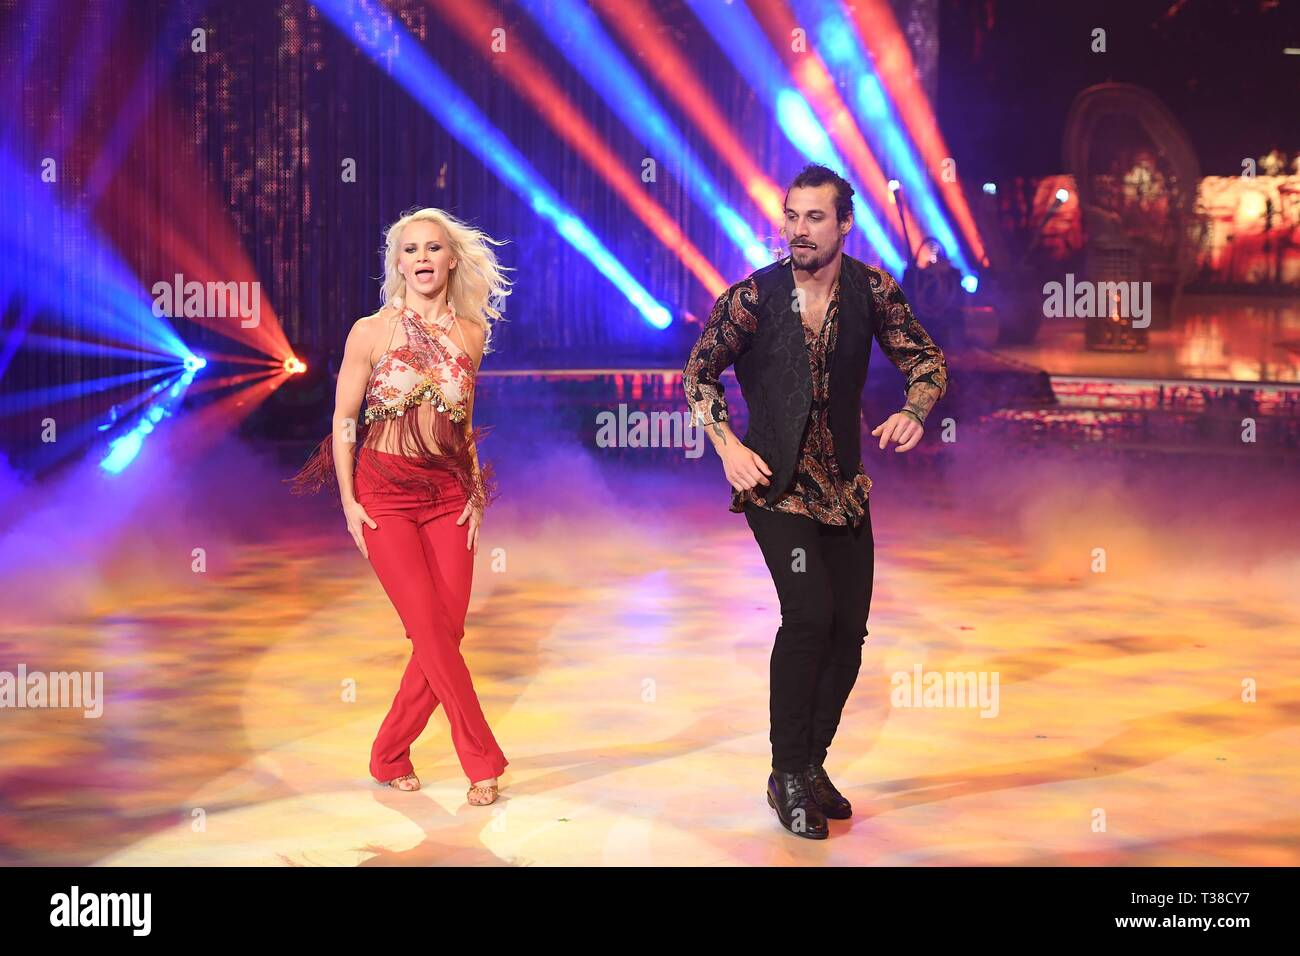 Rome, Italy. 06th Apr, 2019. Rome: Rai Auditorium. Second episode Dancing  with the stars. In the picture: Dani Osvaldo and Veera Kinnunen Credit:  Independent Photo Agency/Alamy Live News Stock Photo - Alamy